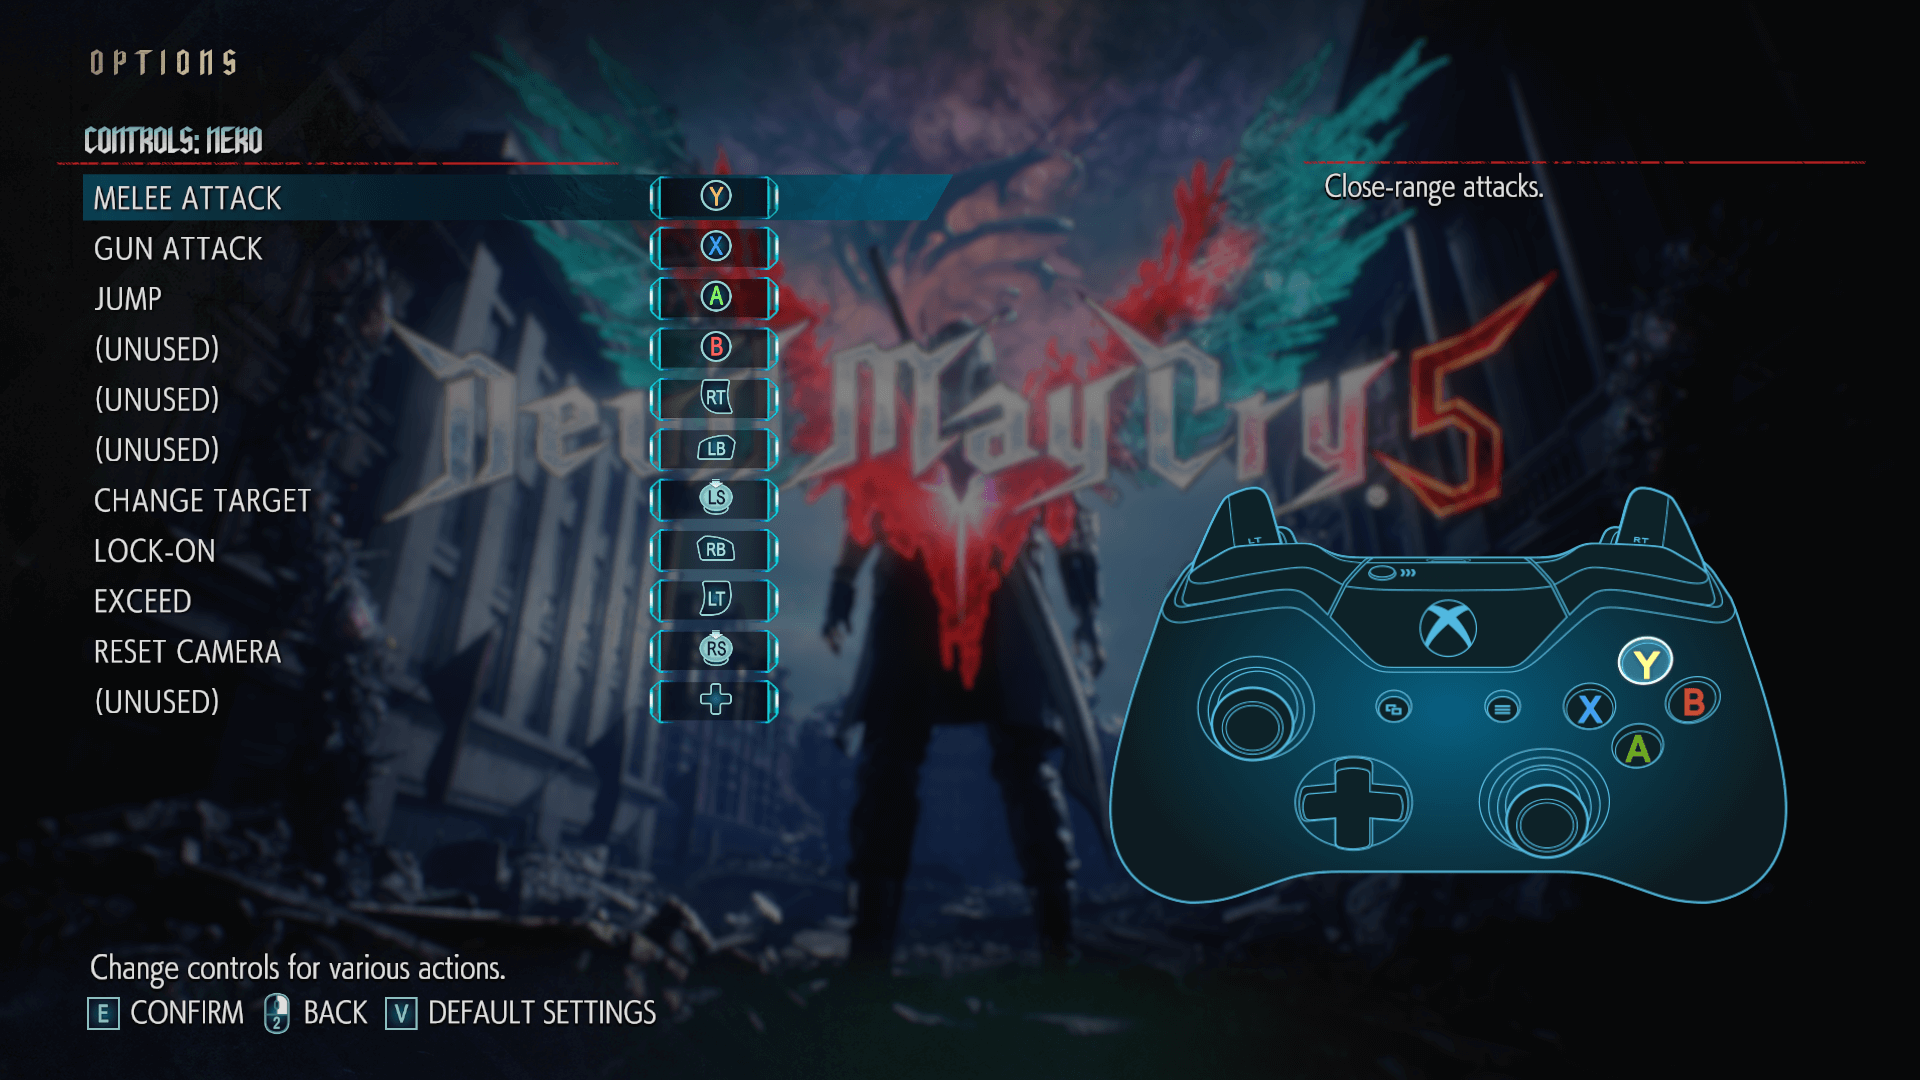 Controls screenshot of Devil May Cry 5 video game interface.